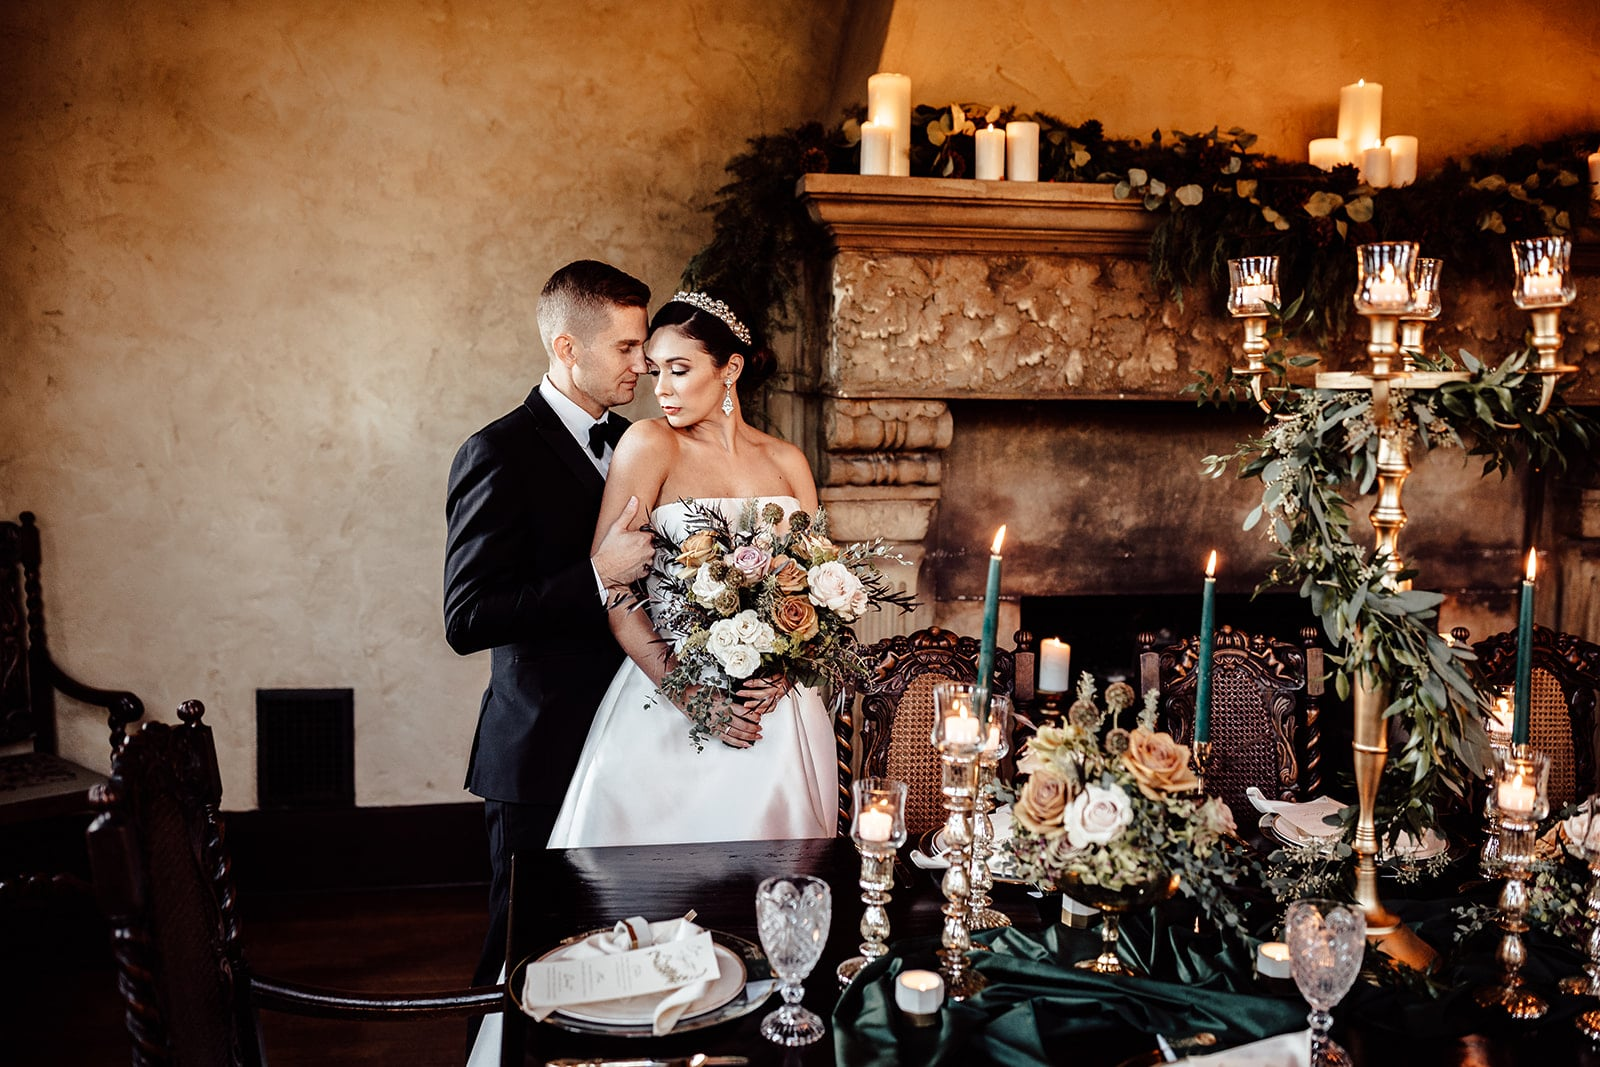 bride and groom stand together next to fire place decorated with garland and candles with table in front of them decorated with floral arrangements and a huge candelabra with garland attached as well as other candles on the table and flatware with plates